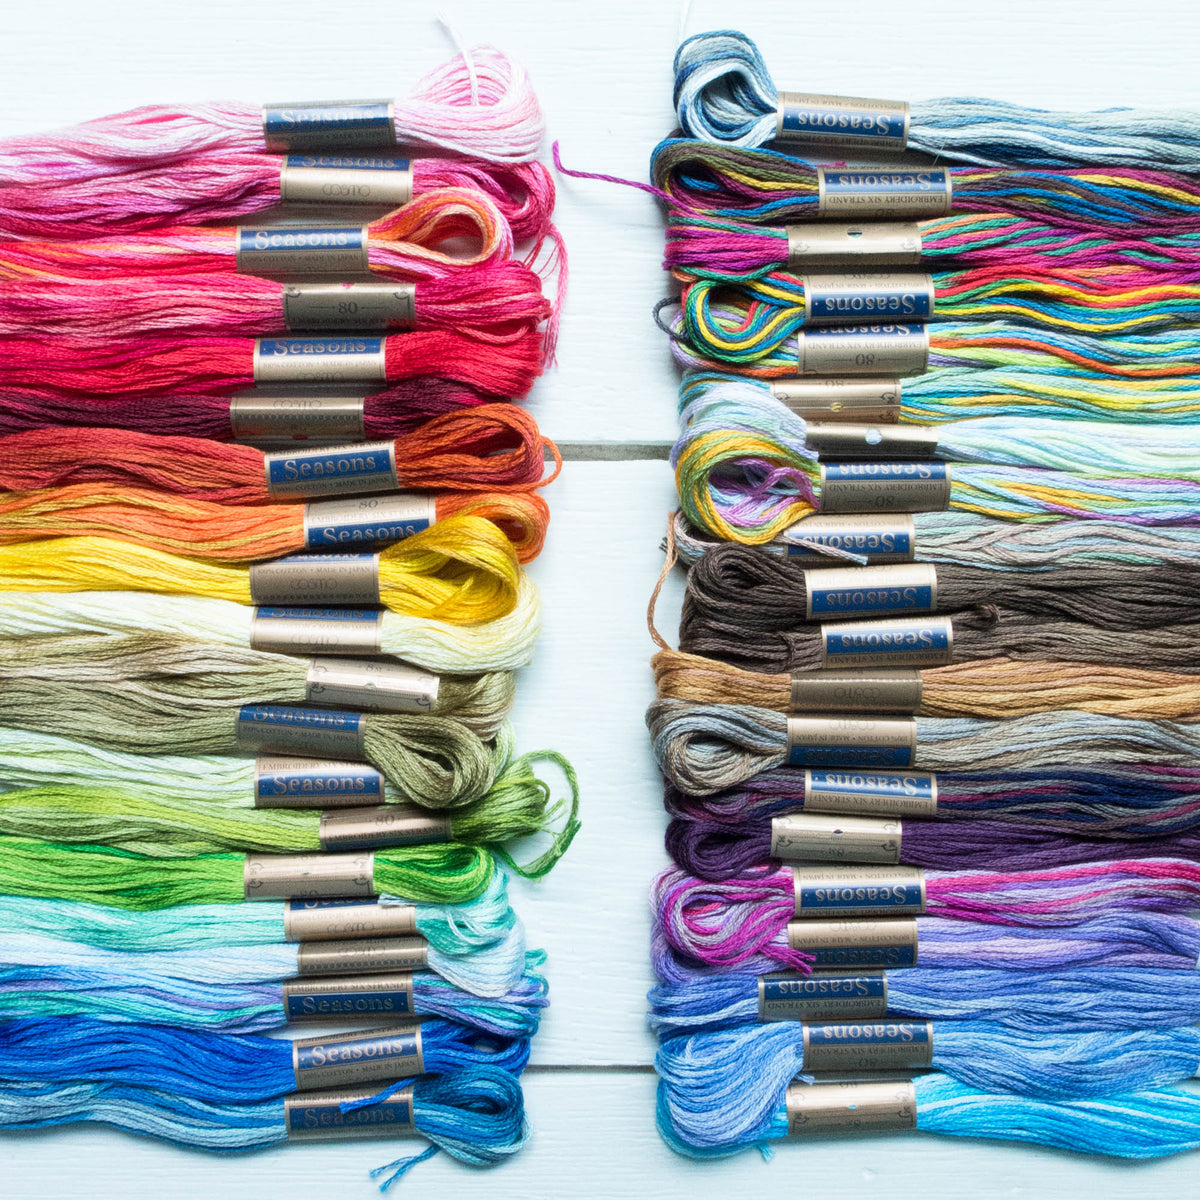 Complete Collection Cosmo Seasons Variegated Embroidery Floss Set - 5000 Series Floss - Snuggly Monkey